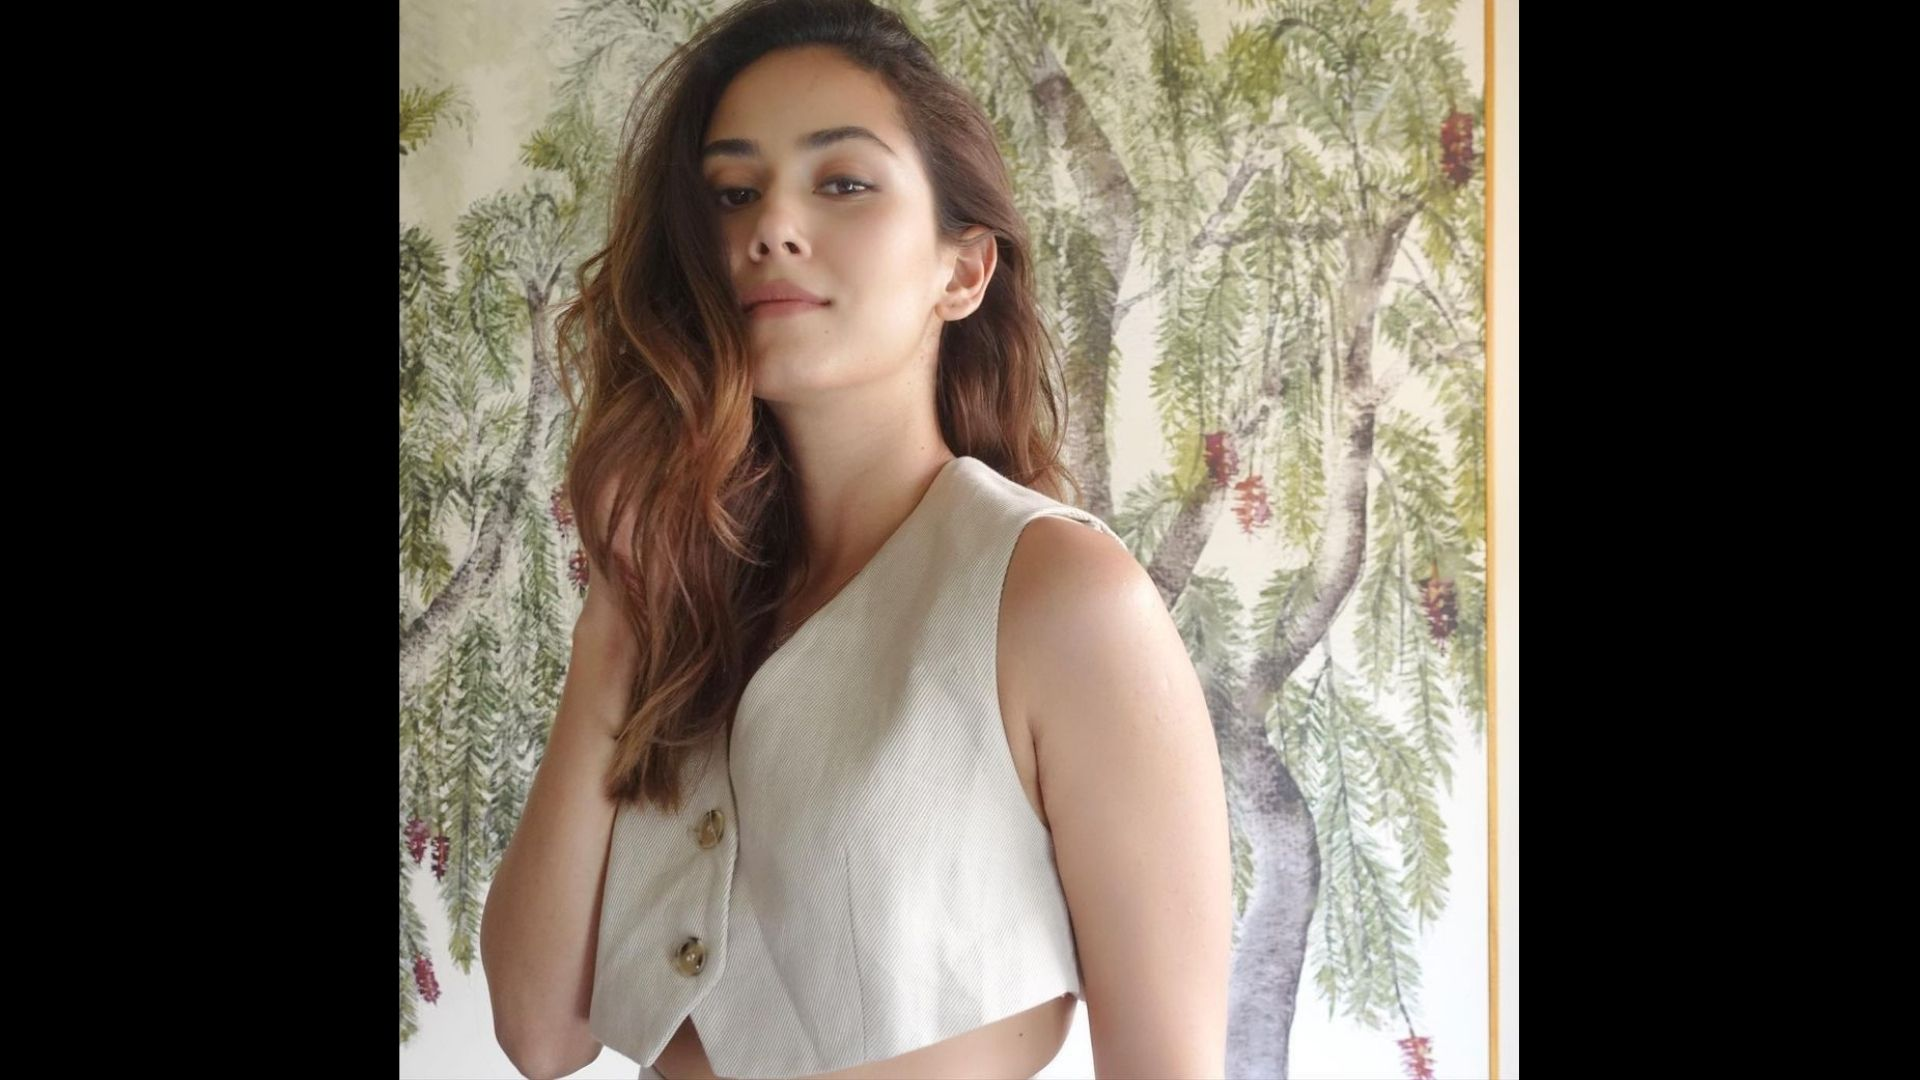 Mira Rajput Hops Onto Instagram's Latest Filters; Shares Stunning Photo With A Unique Caption